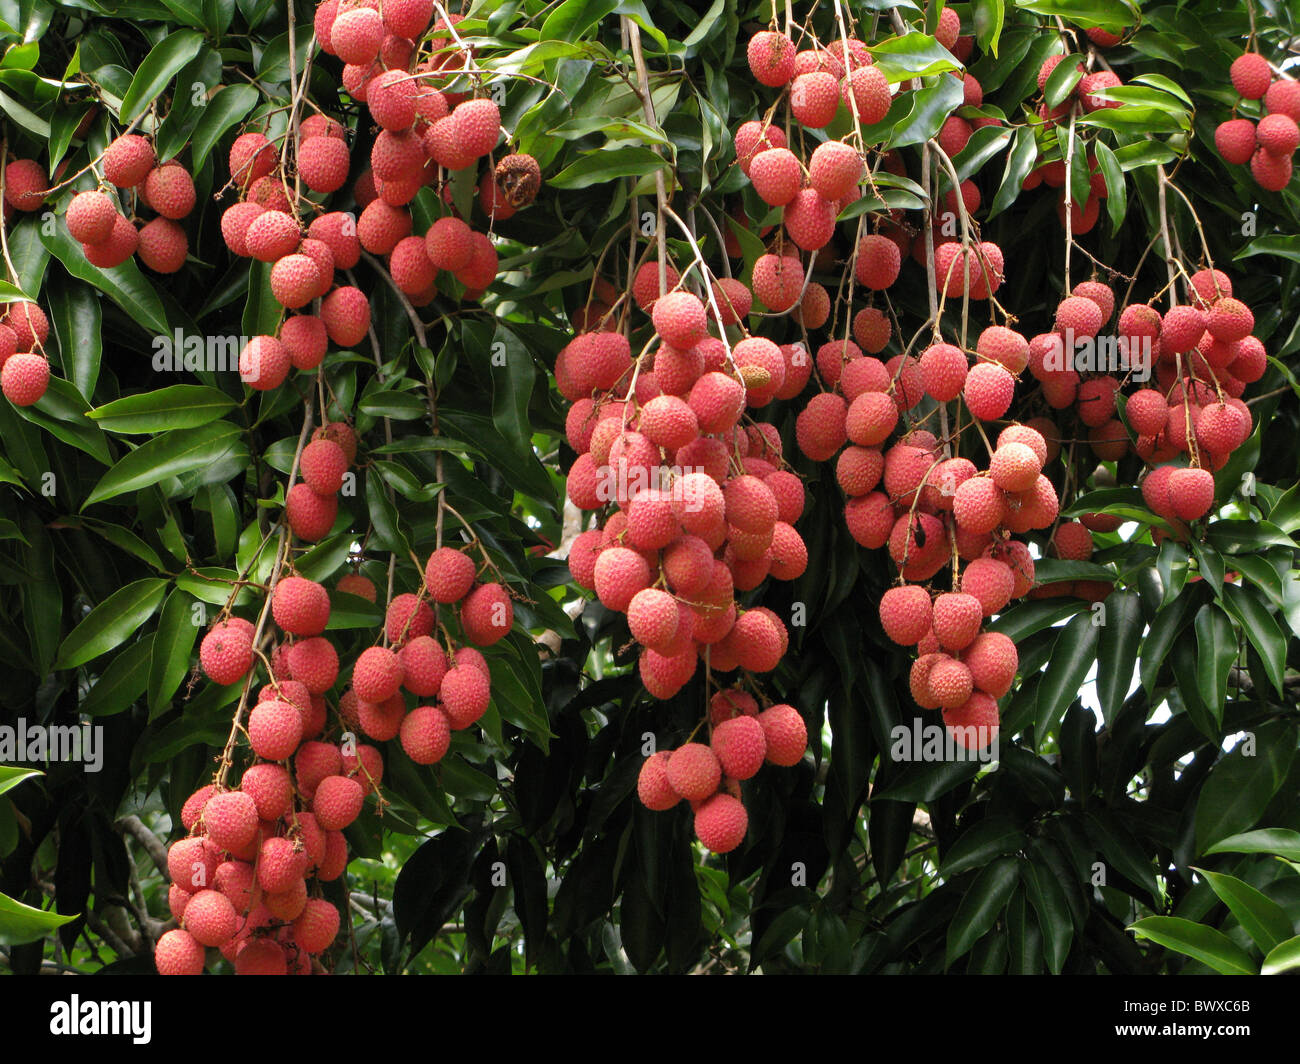 lychee litchi chinensis fruits hanging tree stock photo, royalty, Beautiful flower